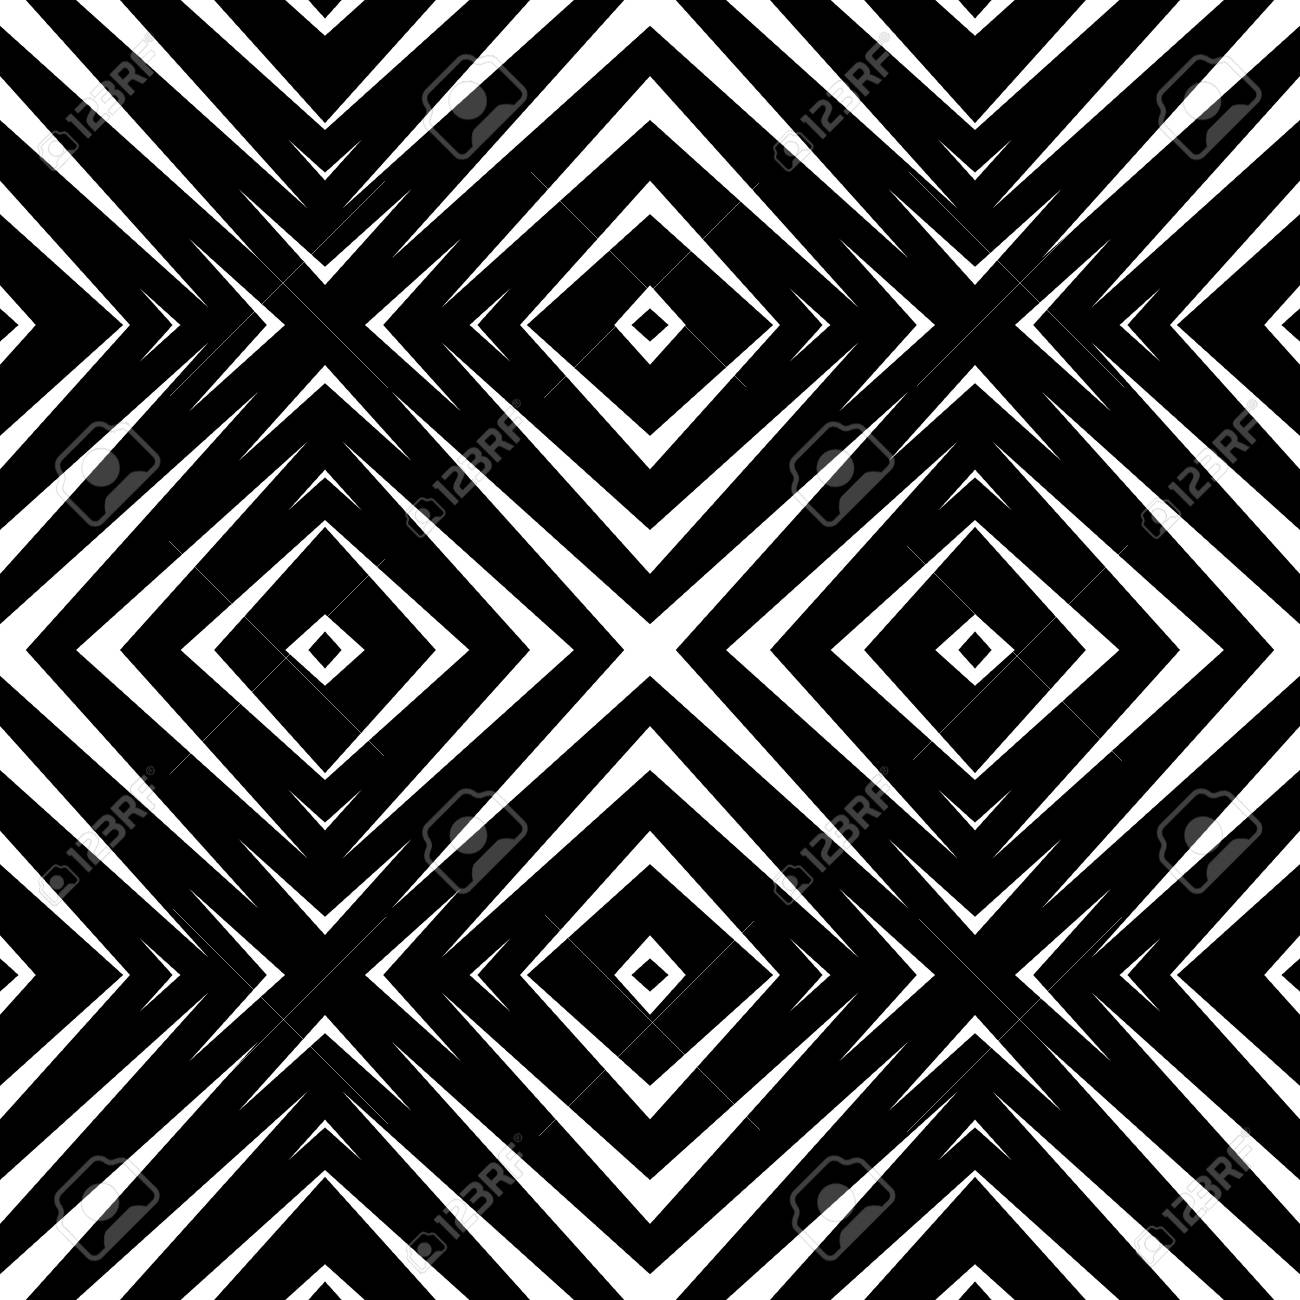 abstract geometric seamless pattern. simple black and white